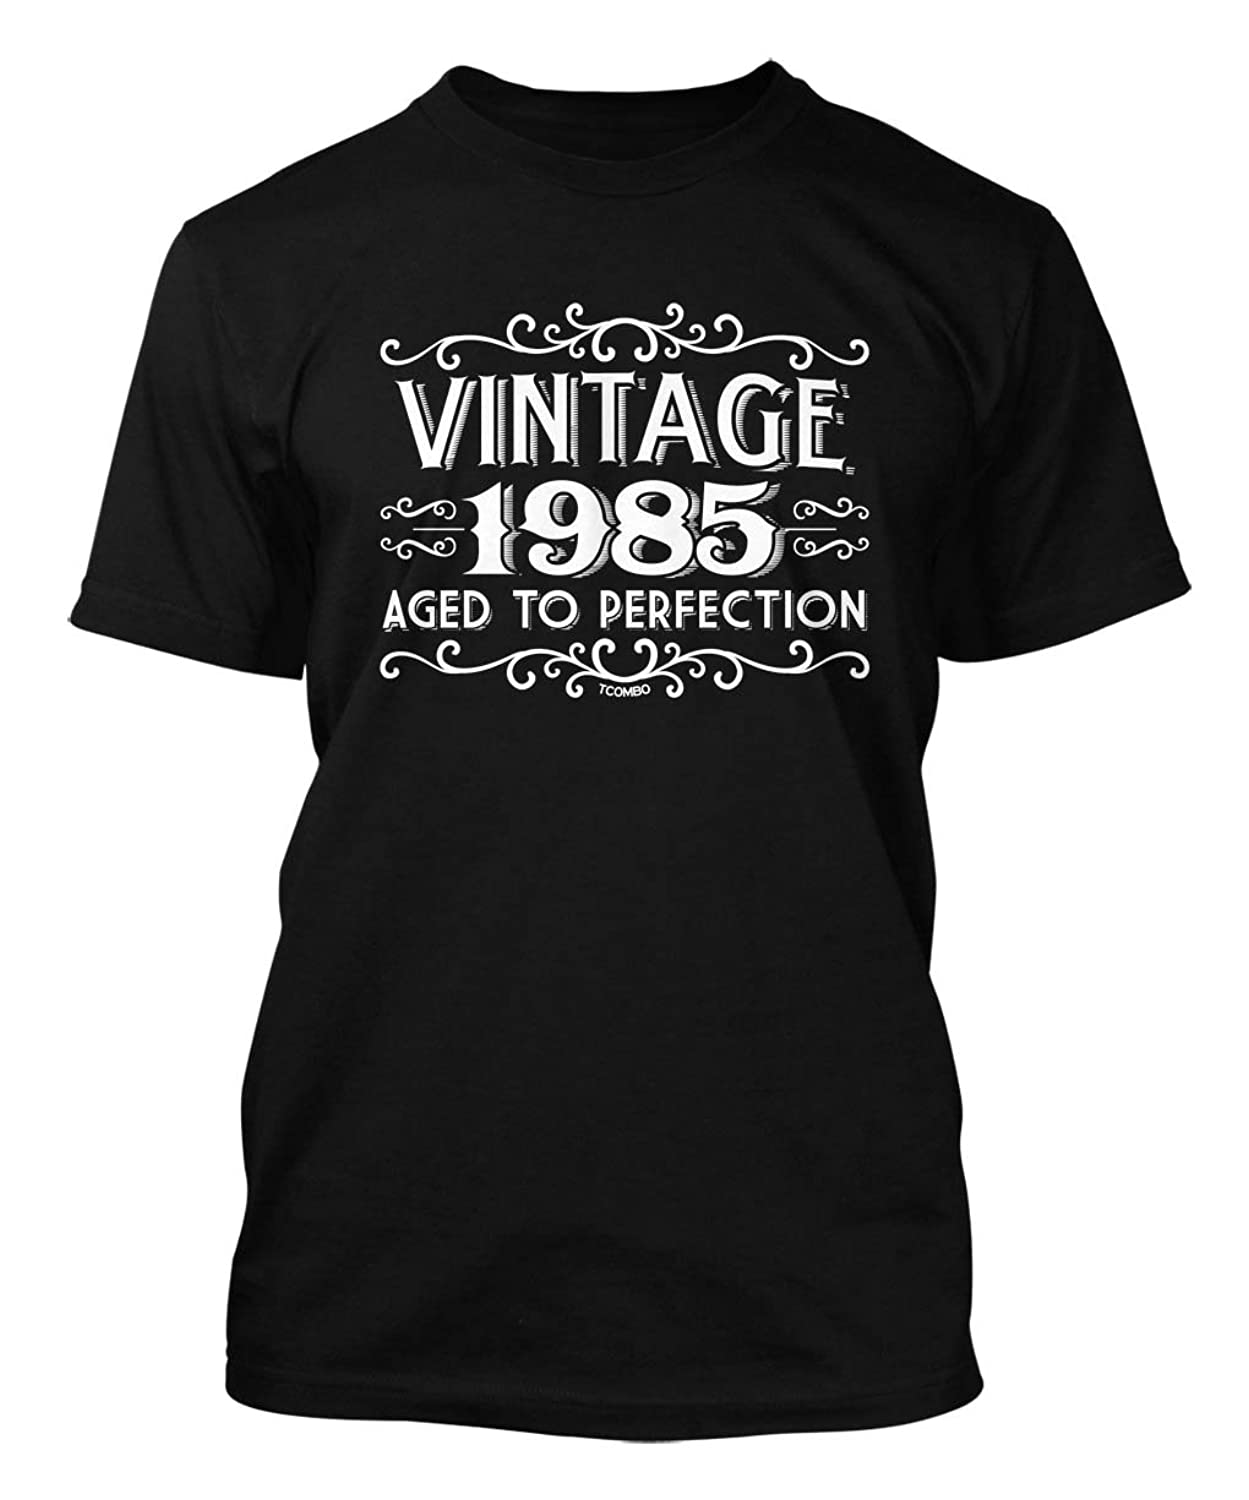 Vintage 1985 Aged To Perfection 30th Birthday Men's T-shirt